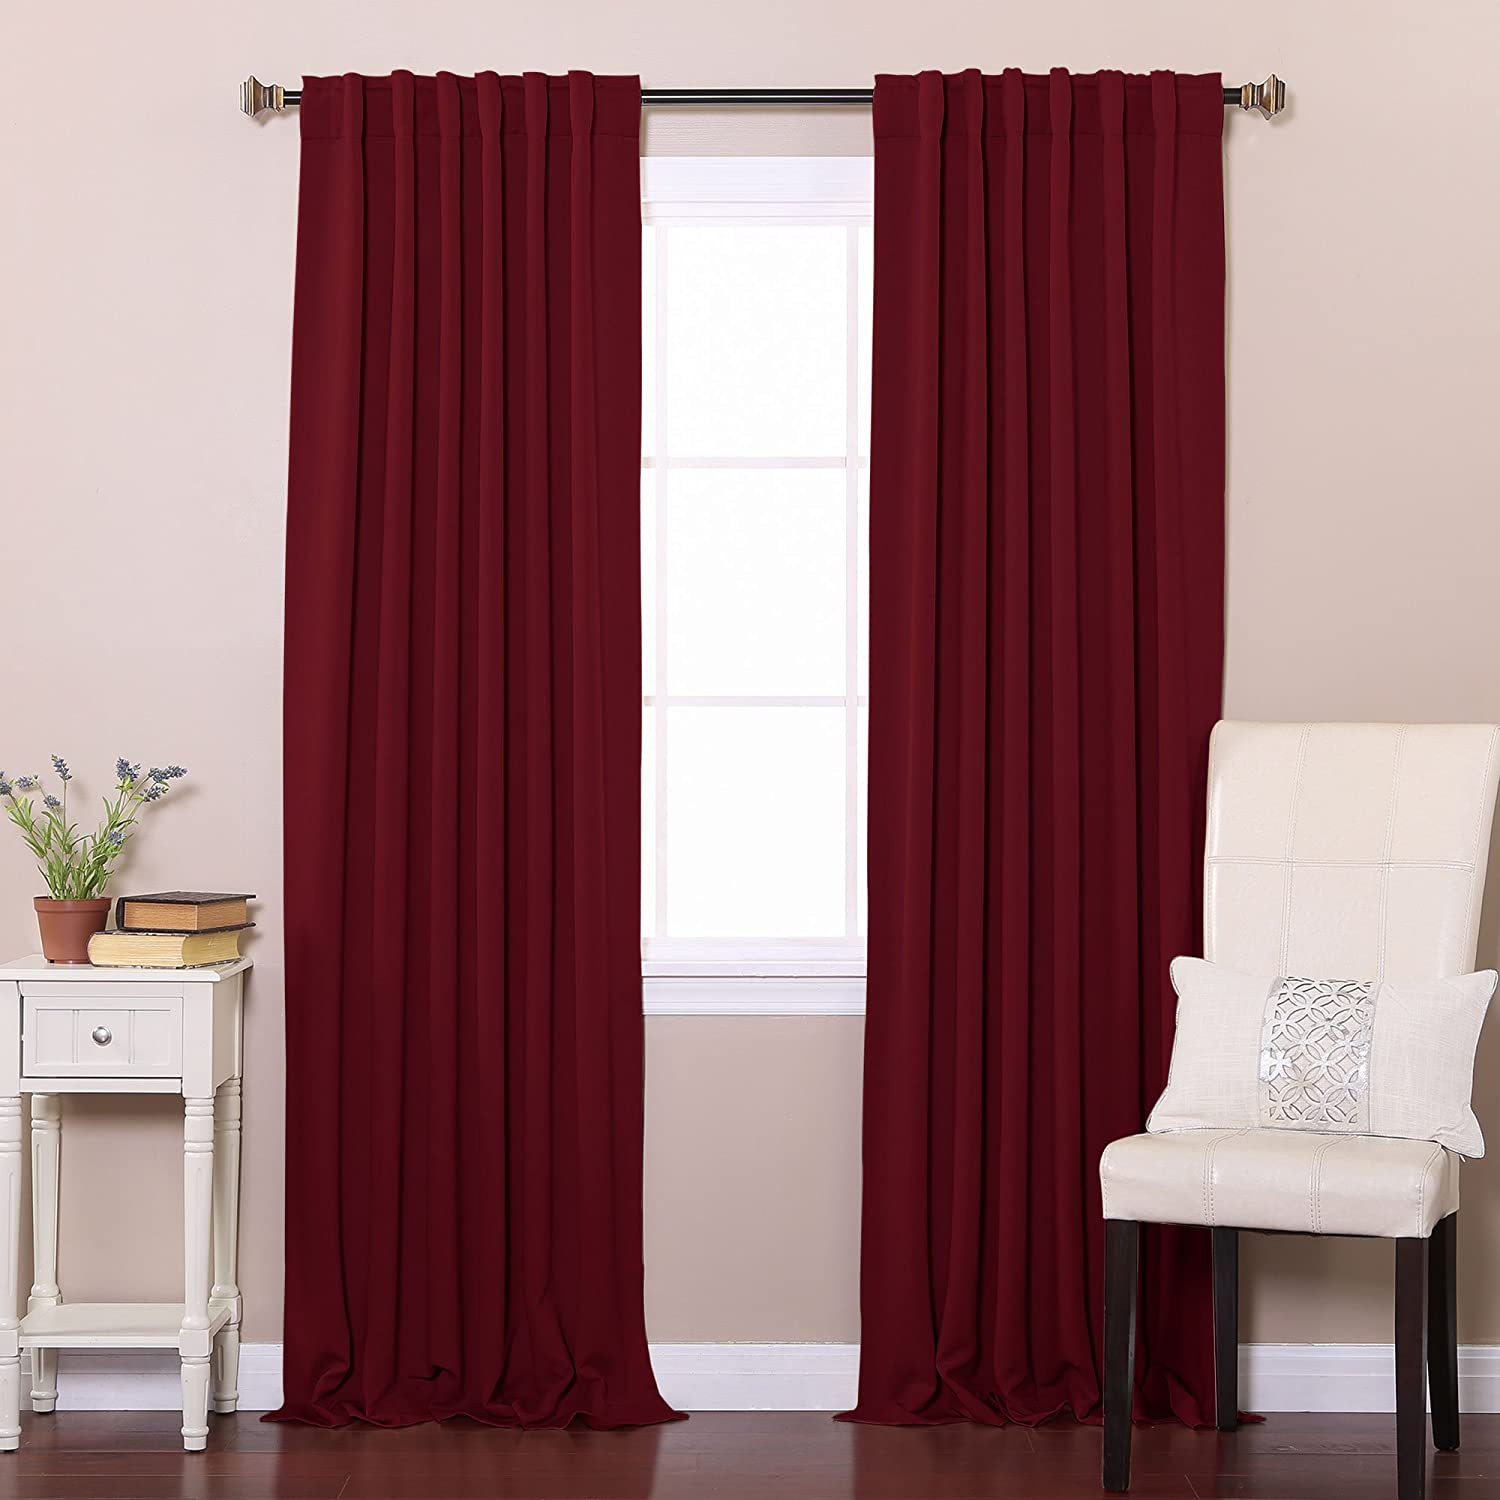 and curtains of elegant veritas amazon download embroidered solid furniture insulated white thermal teal luxury vox deconovo curtain blackout grommet info drapes